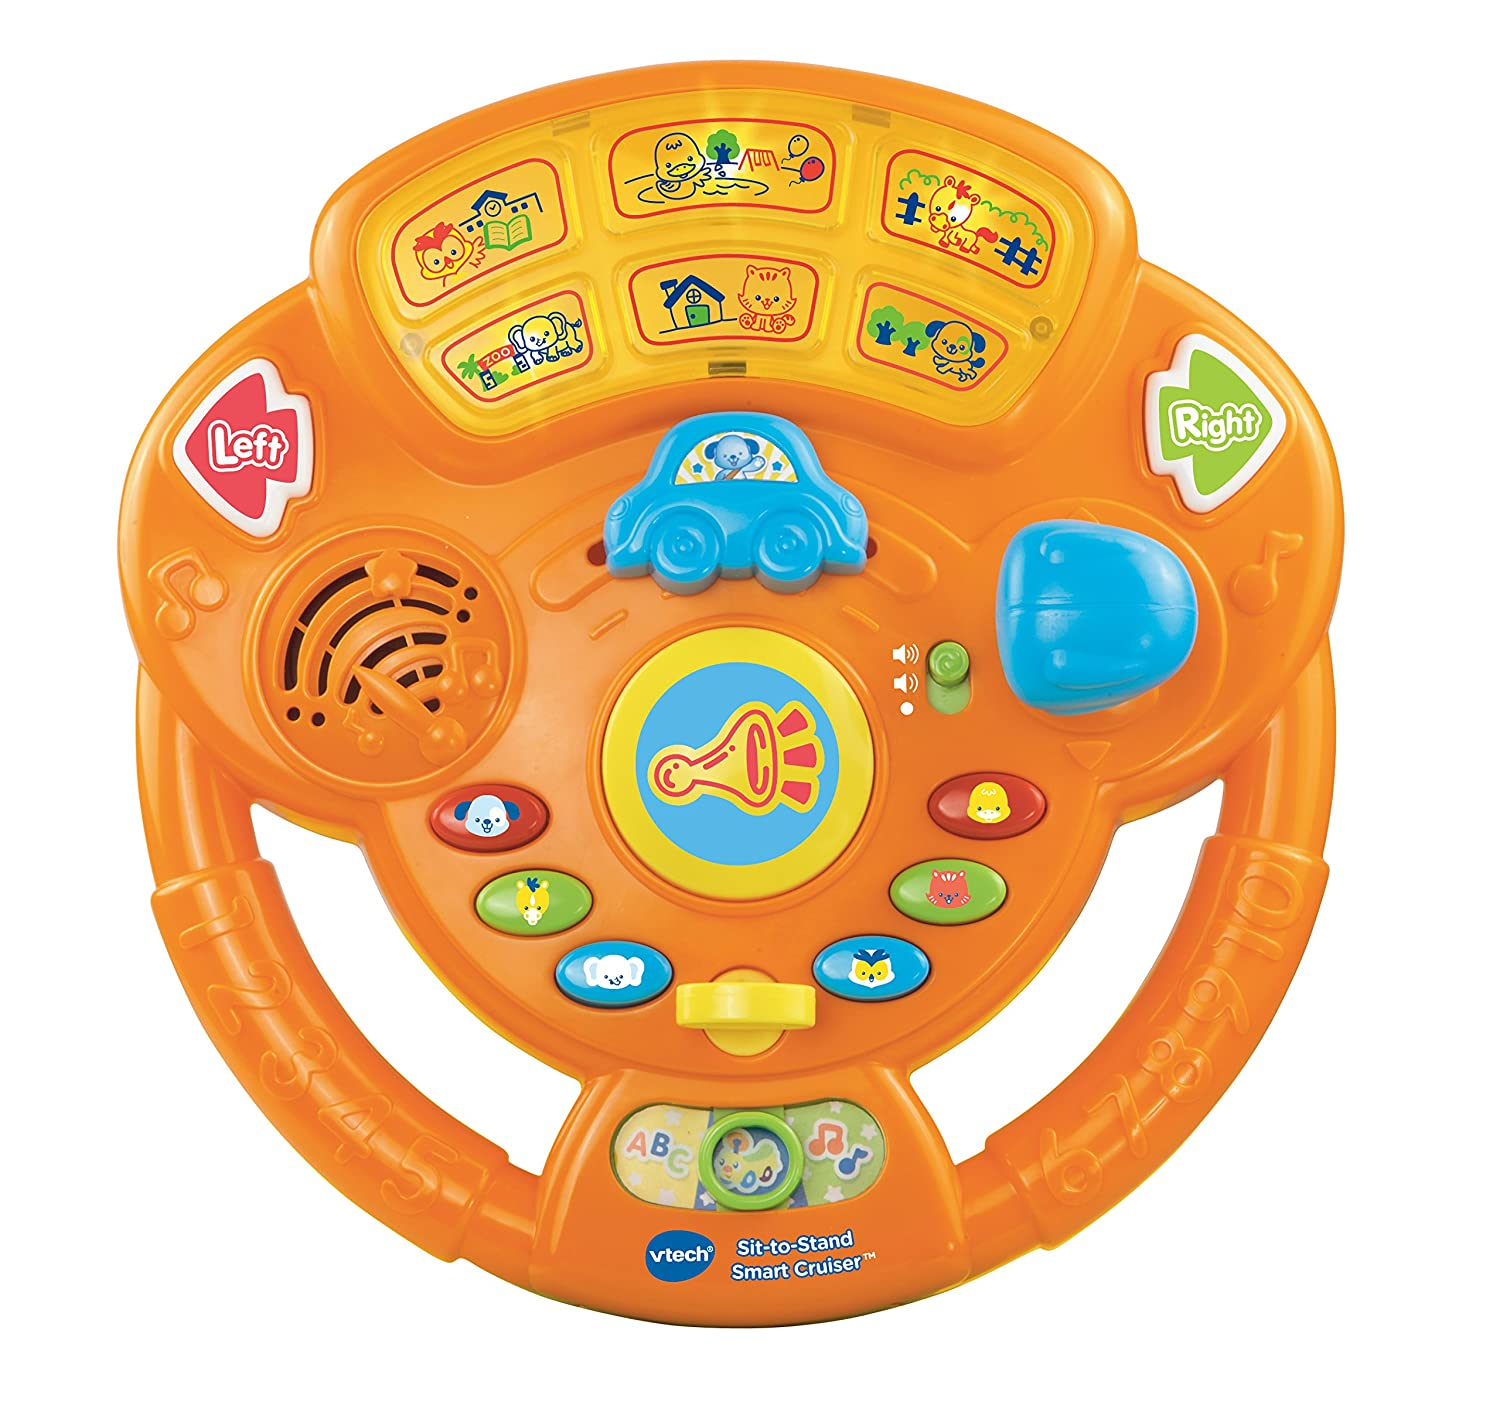 Amazon VTech Sit to Stand Smart Cruiser Toy Toys & Games